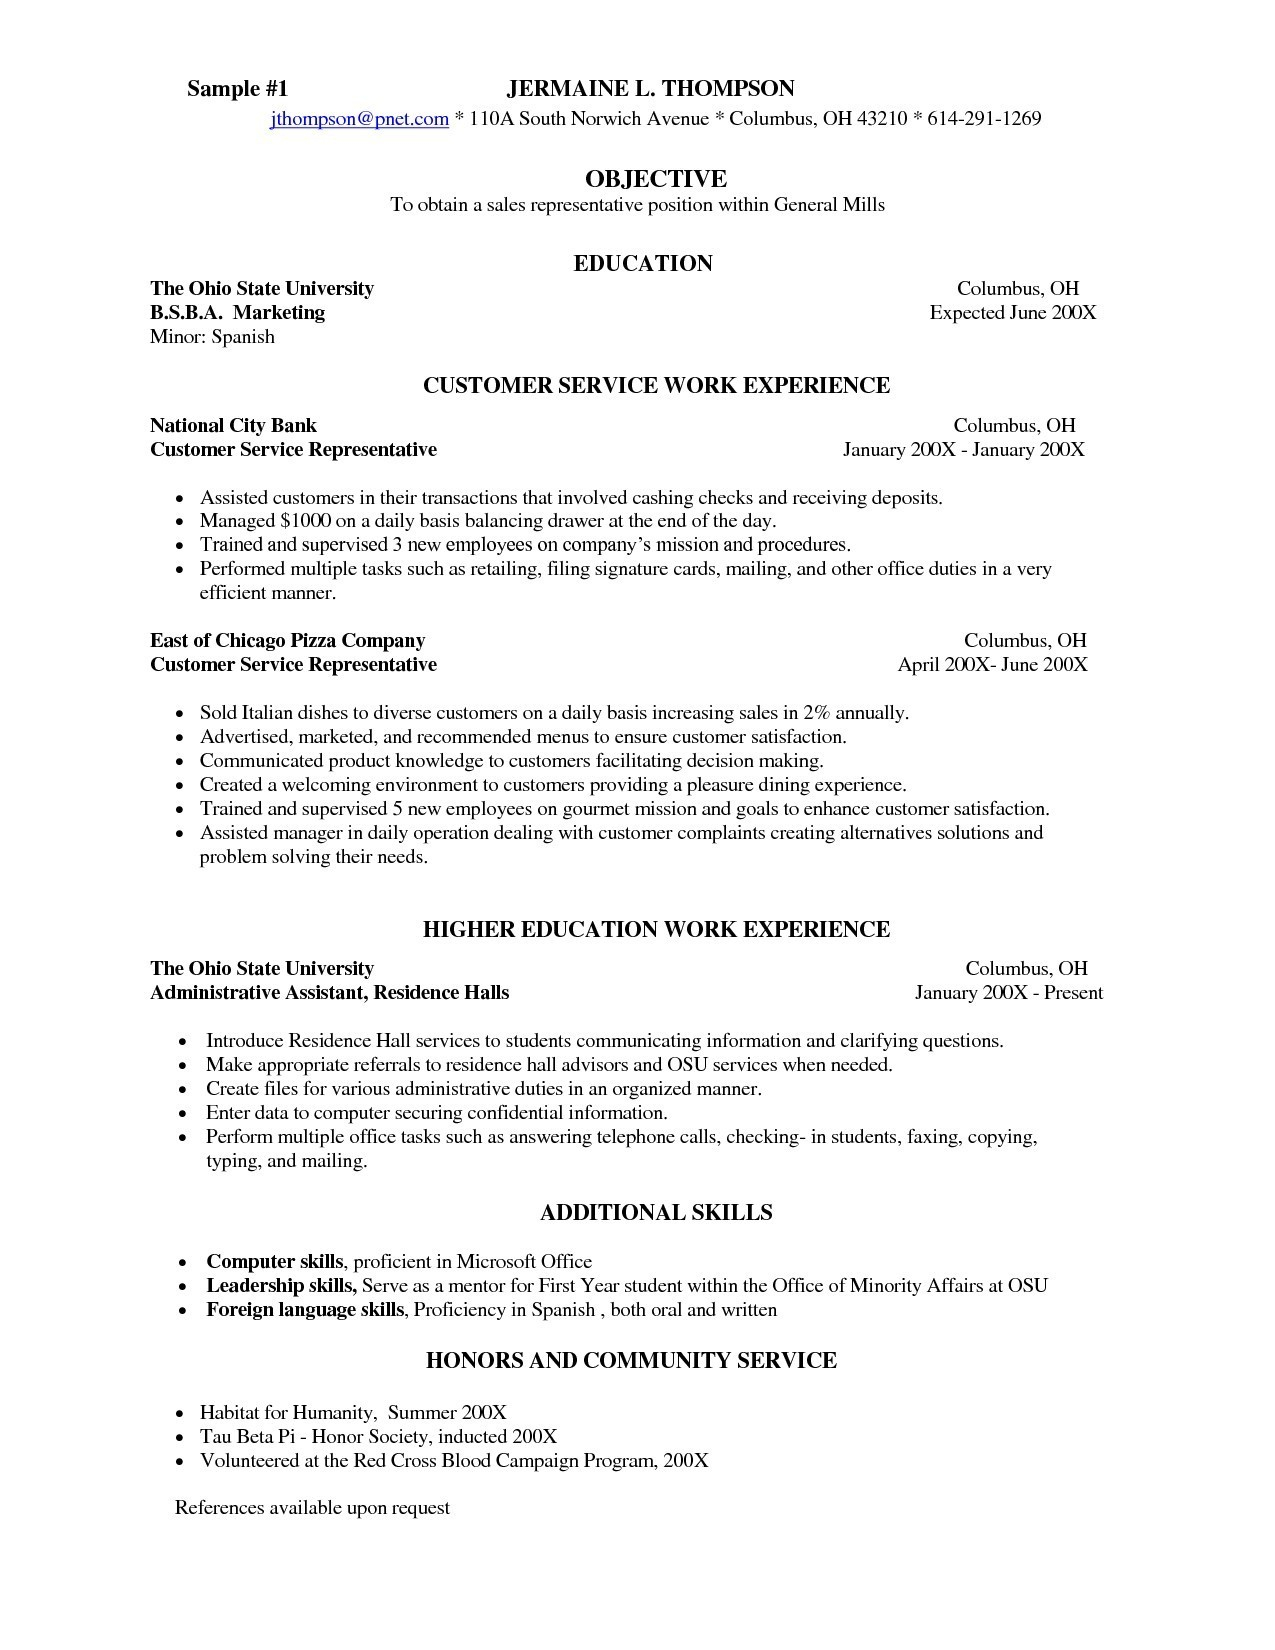 Resume Services Chicago - Great Objectives for Resumes Awesome Cover Letter for Resumes Resume